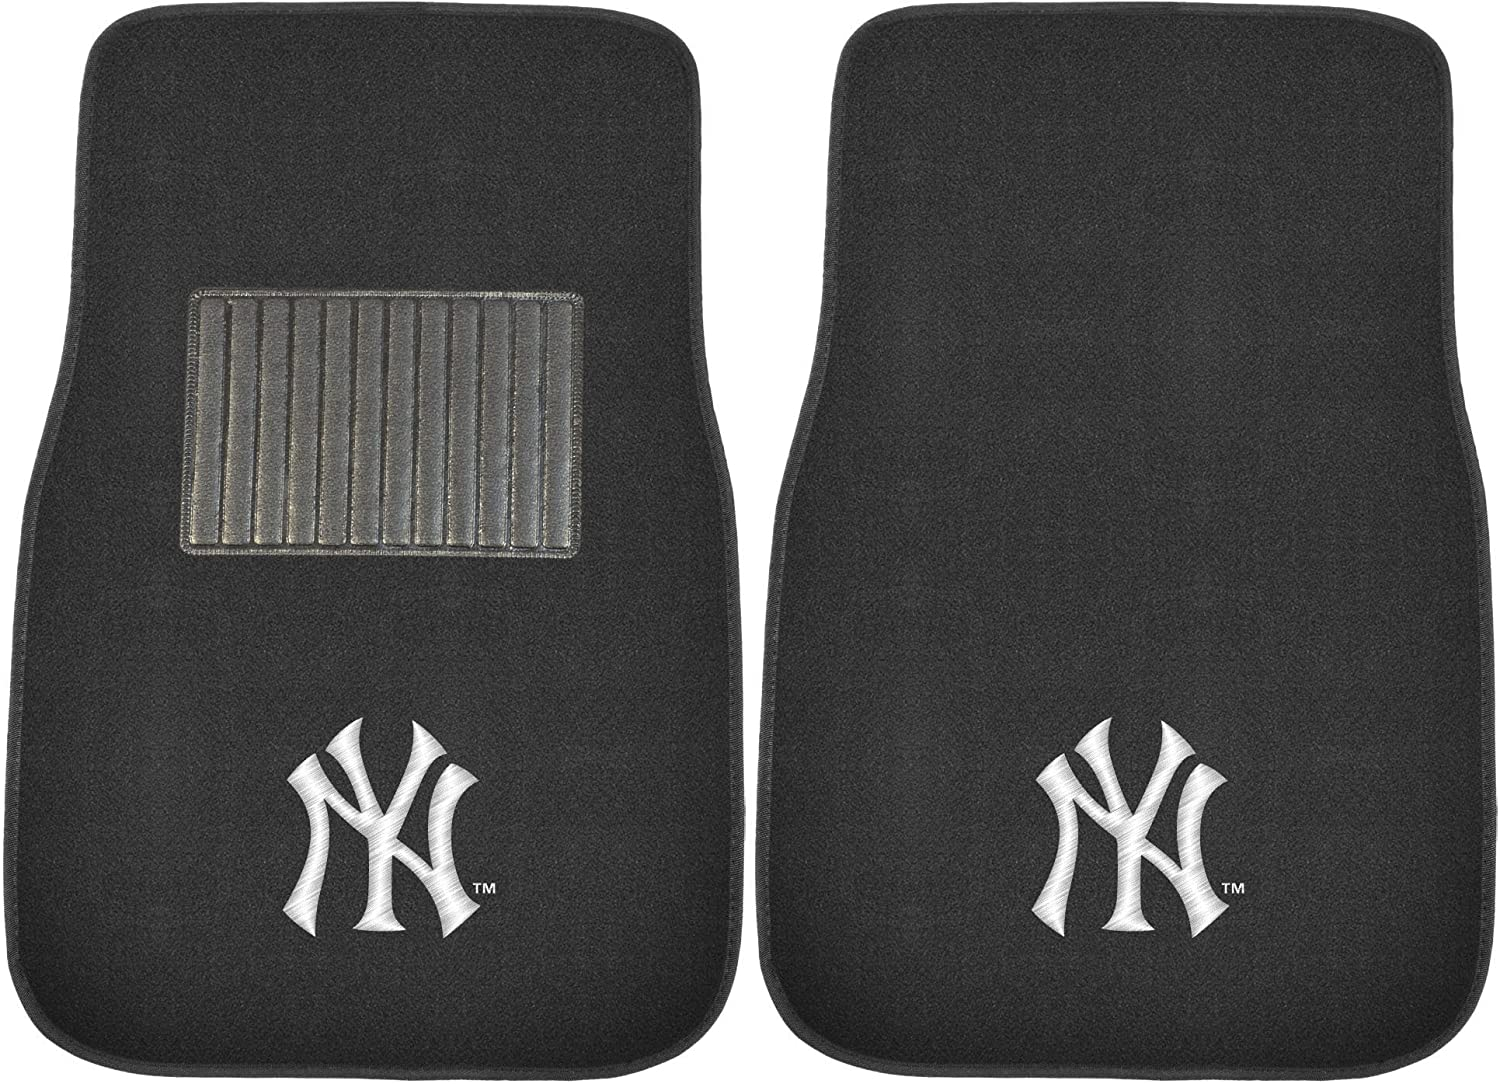 FANMATS MLB Unisex-Adult 2-pc Embroidered Car Mat Set